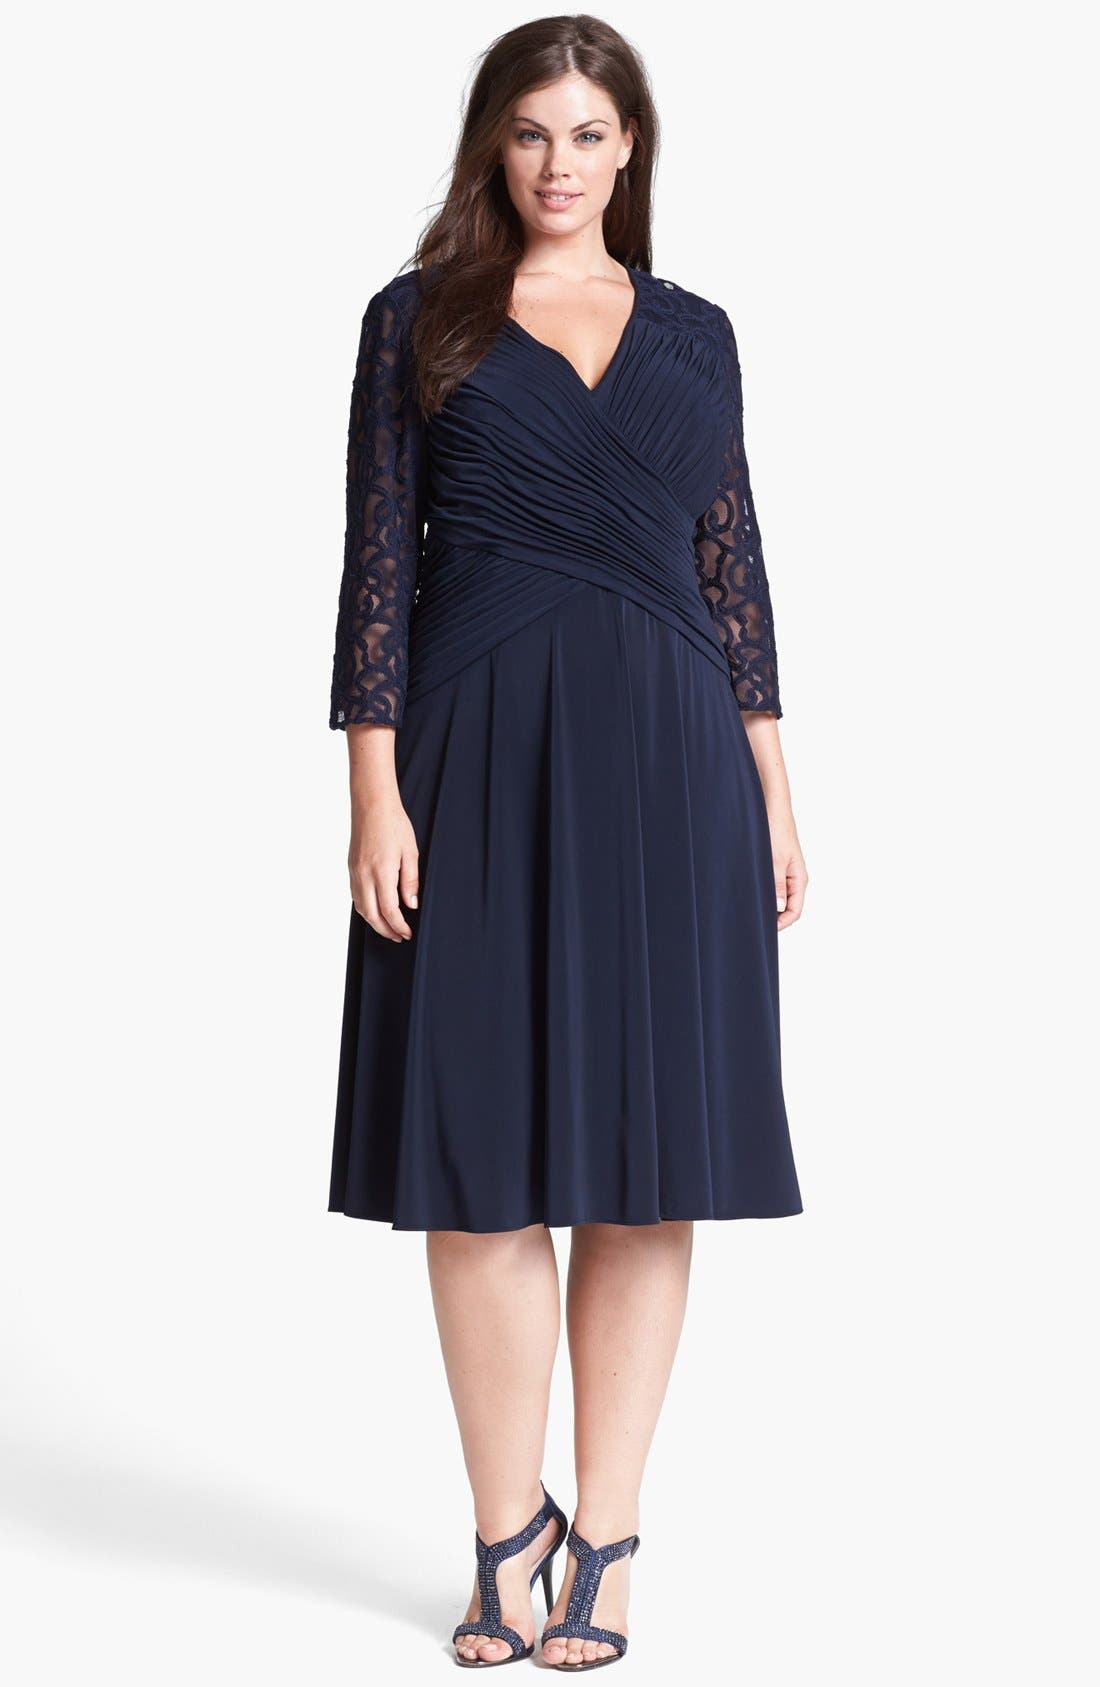 Alternate Image 1 Selected - Adrianna Papell Lace Detail Jersey Fit & Flare Dress (Plus Size)